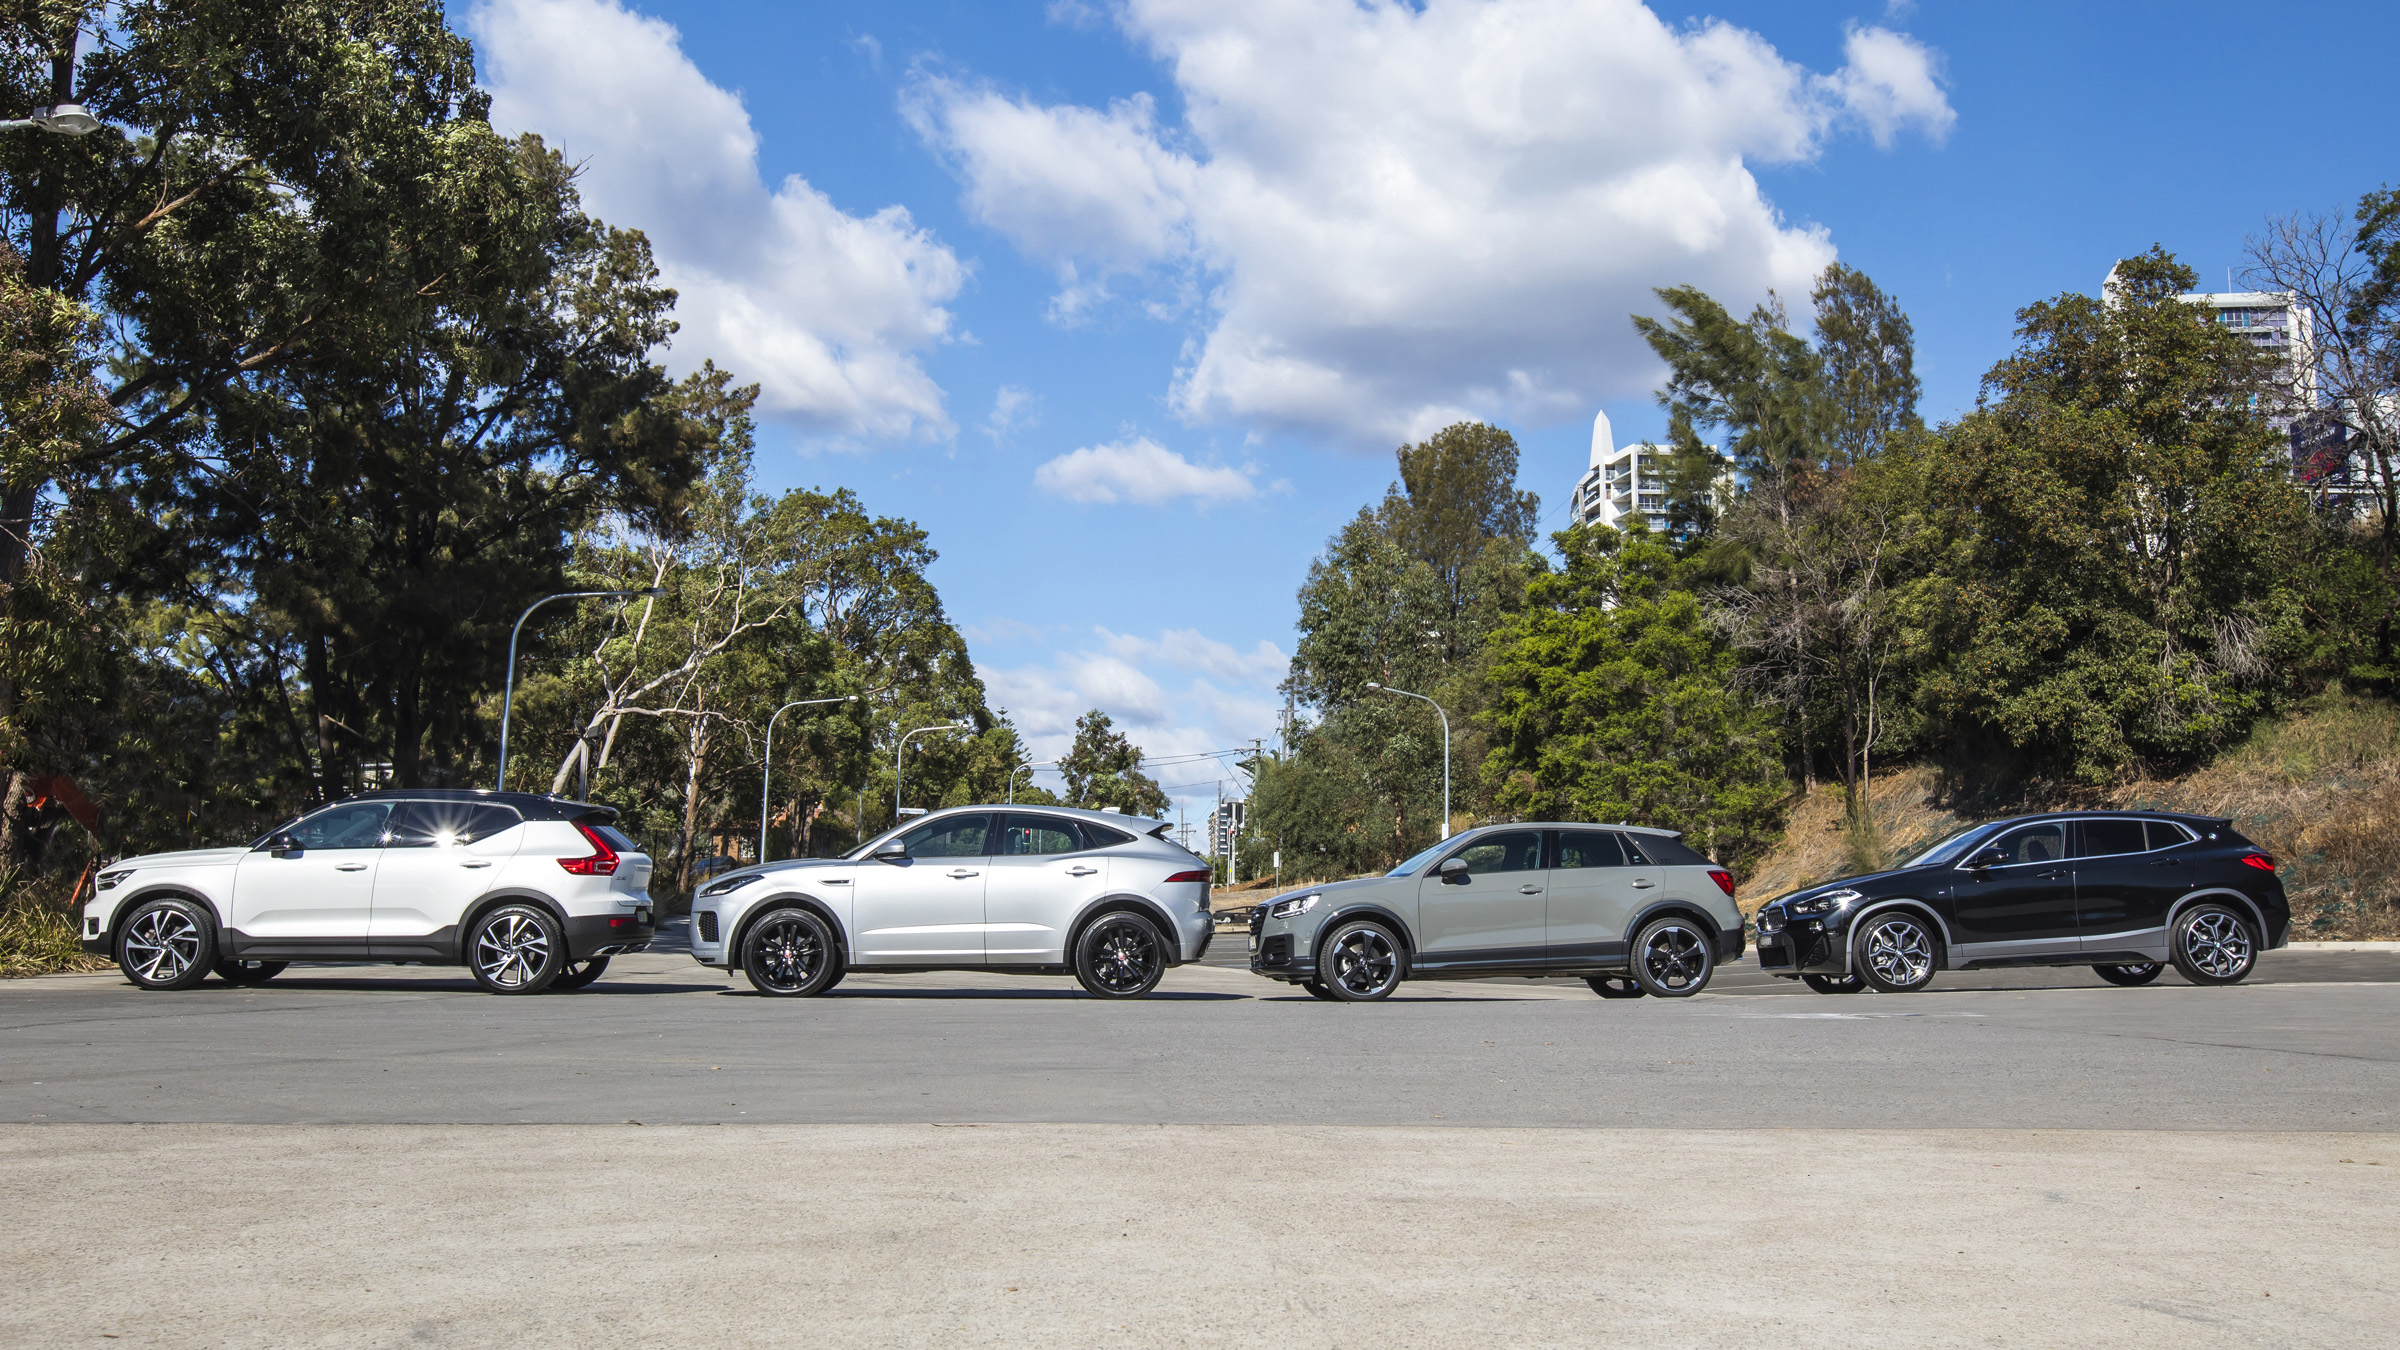 Two new additions to the luxury pint-sized hot hatch set take on the established players.